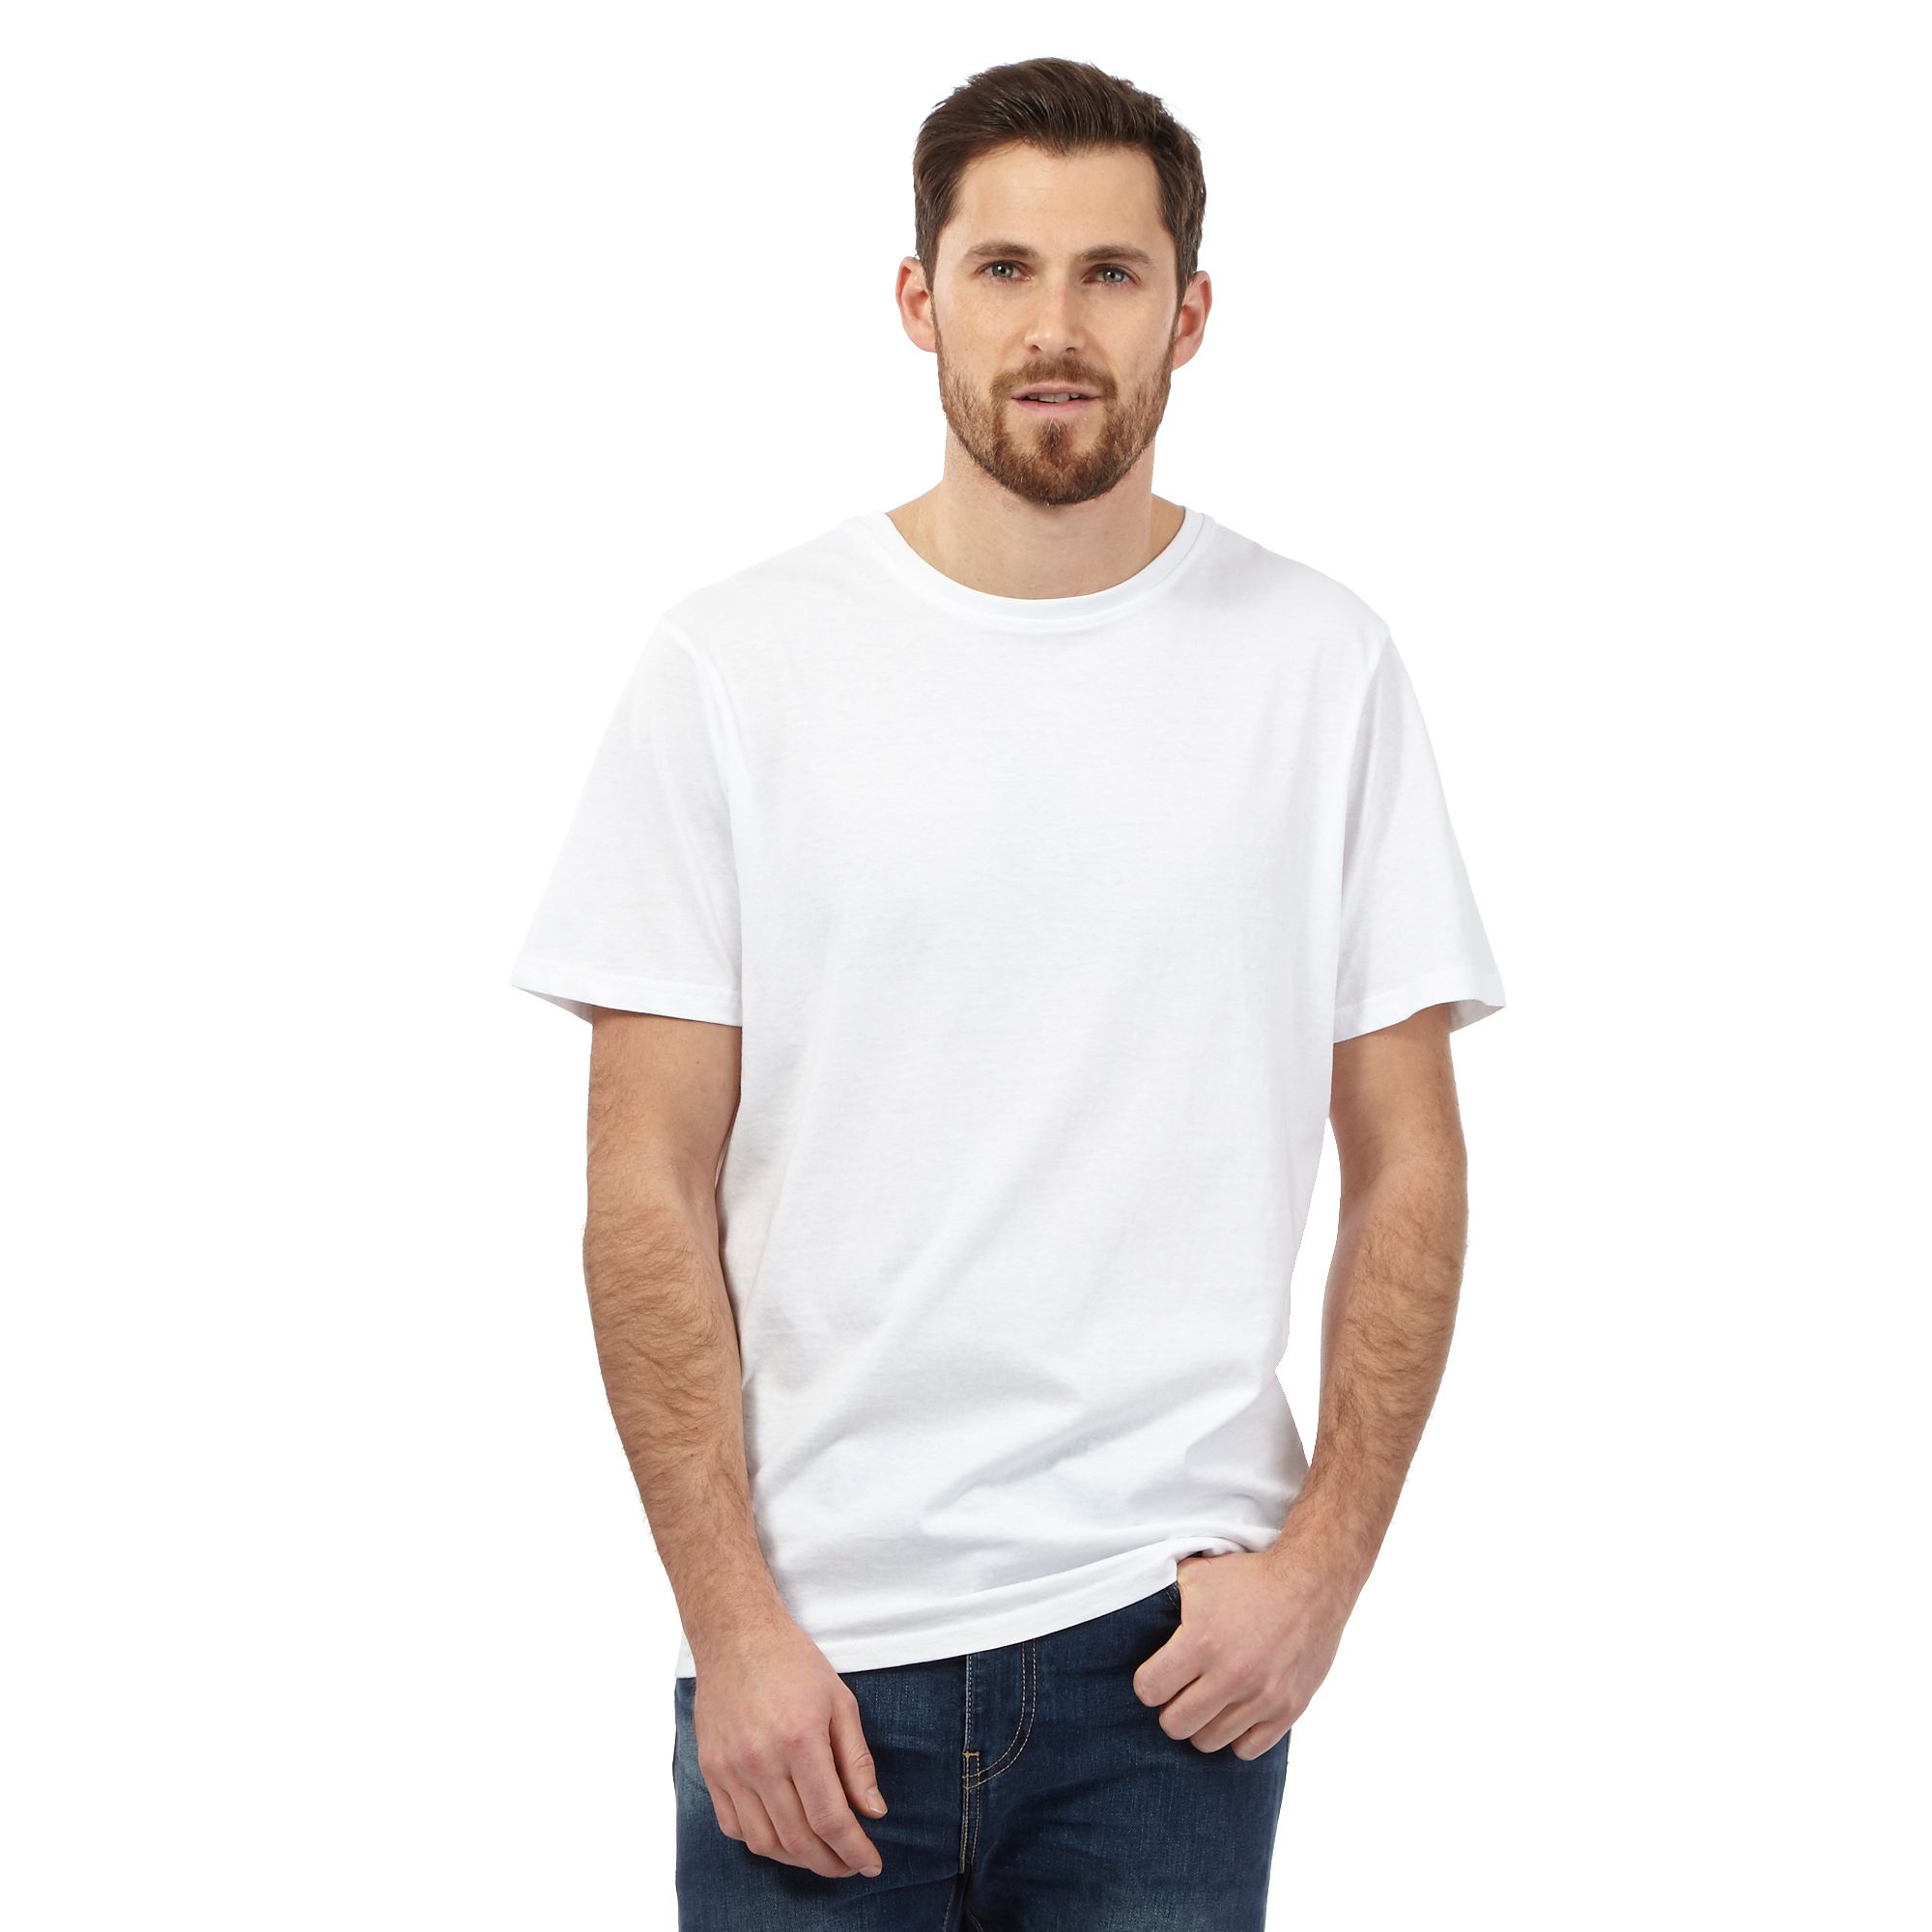 May 02,  · From its humble beginnings as standard-issue Navy gear to Marlon Brando and James Dean, the Hanes five-pack, and three-figure-price-tag designer iterations, the men's white .